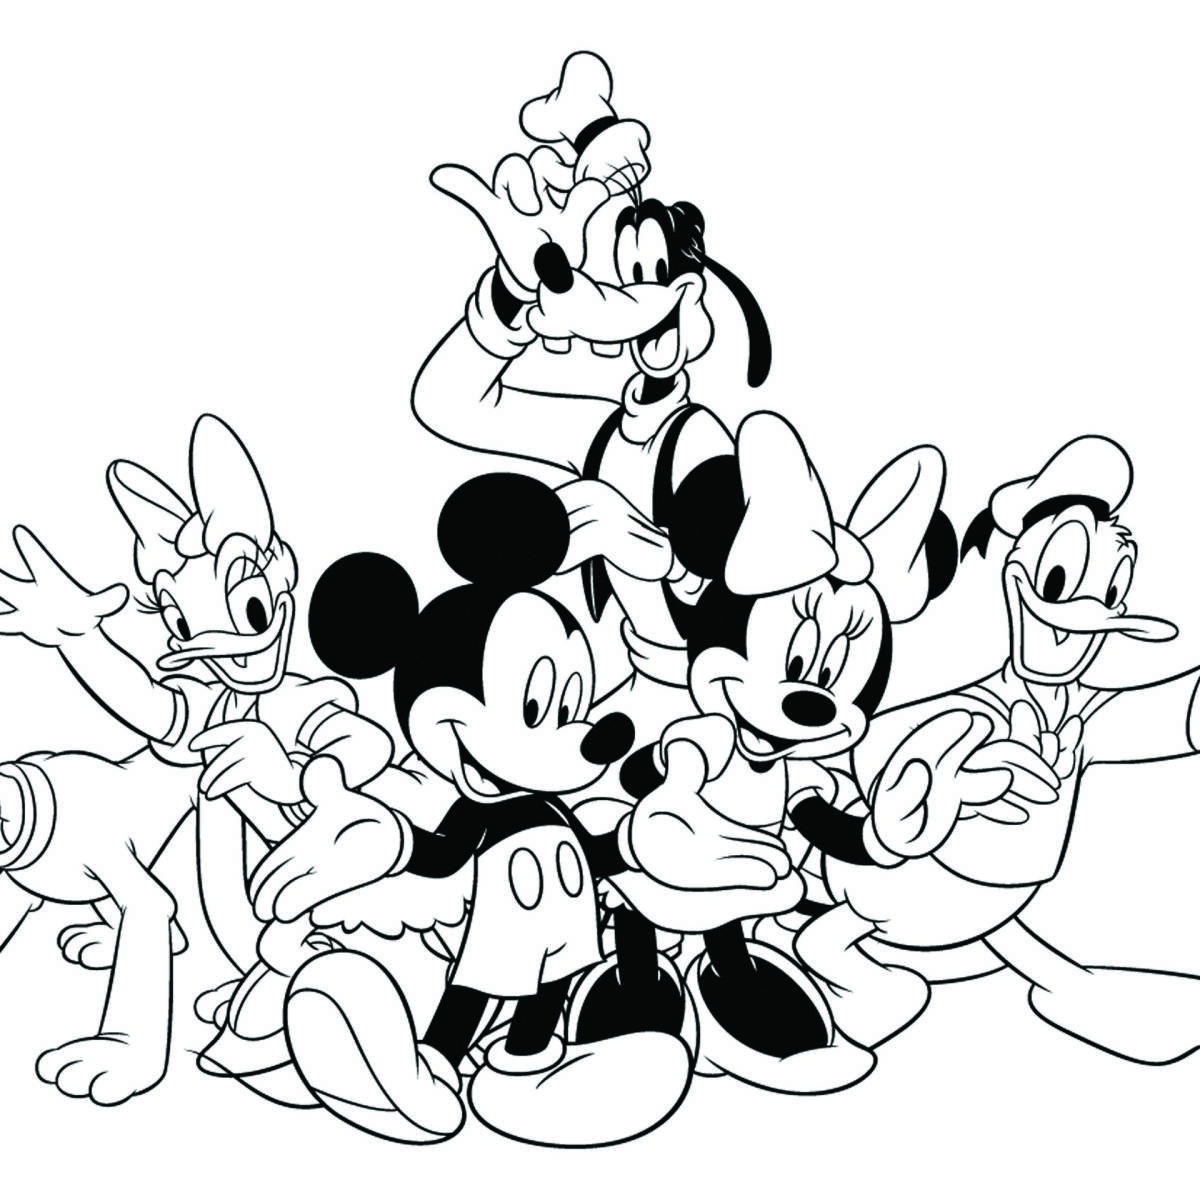 New Walt Disney World Coloring Pages Collection Printable Of Walt Disney Coloring Pages Marie Walt Disney Characters Download